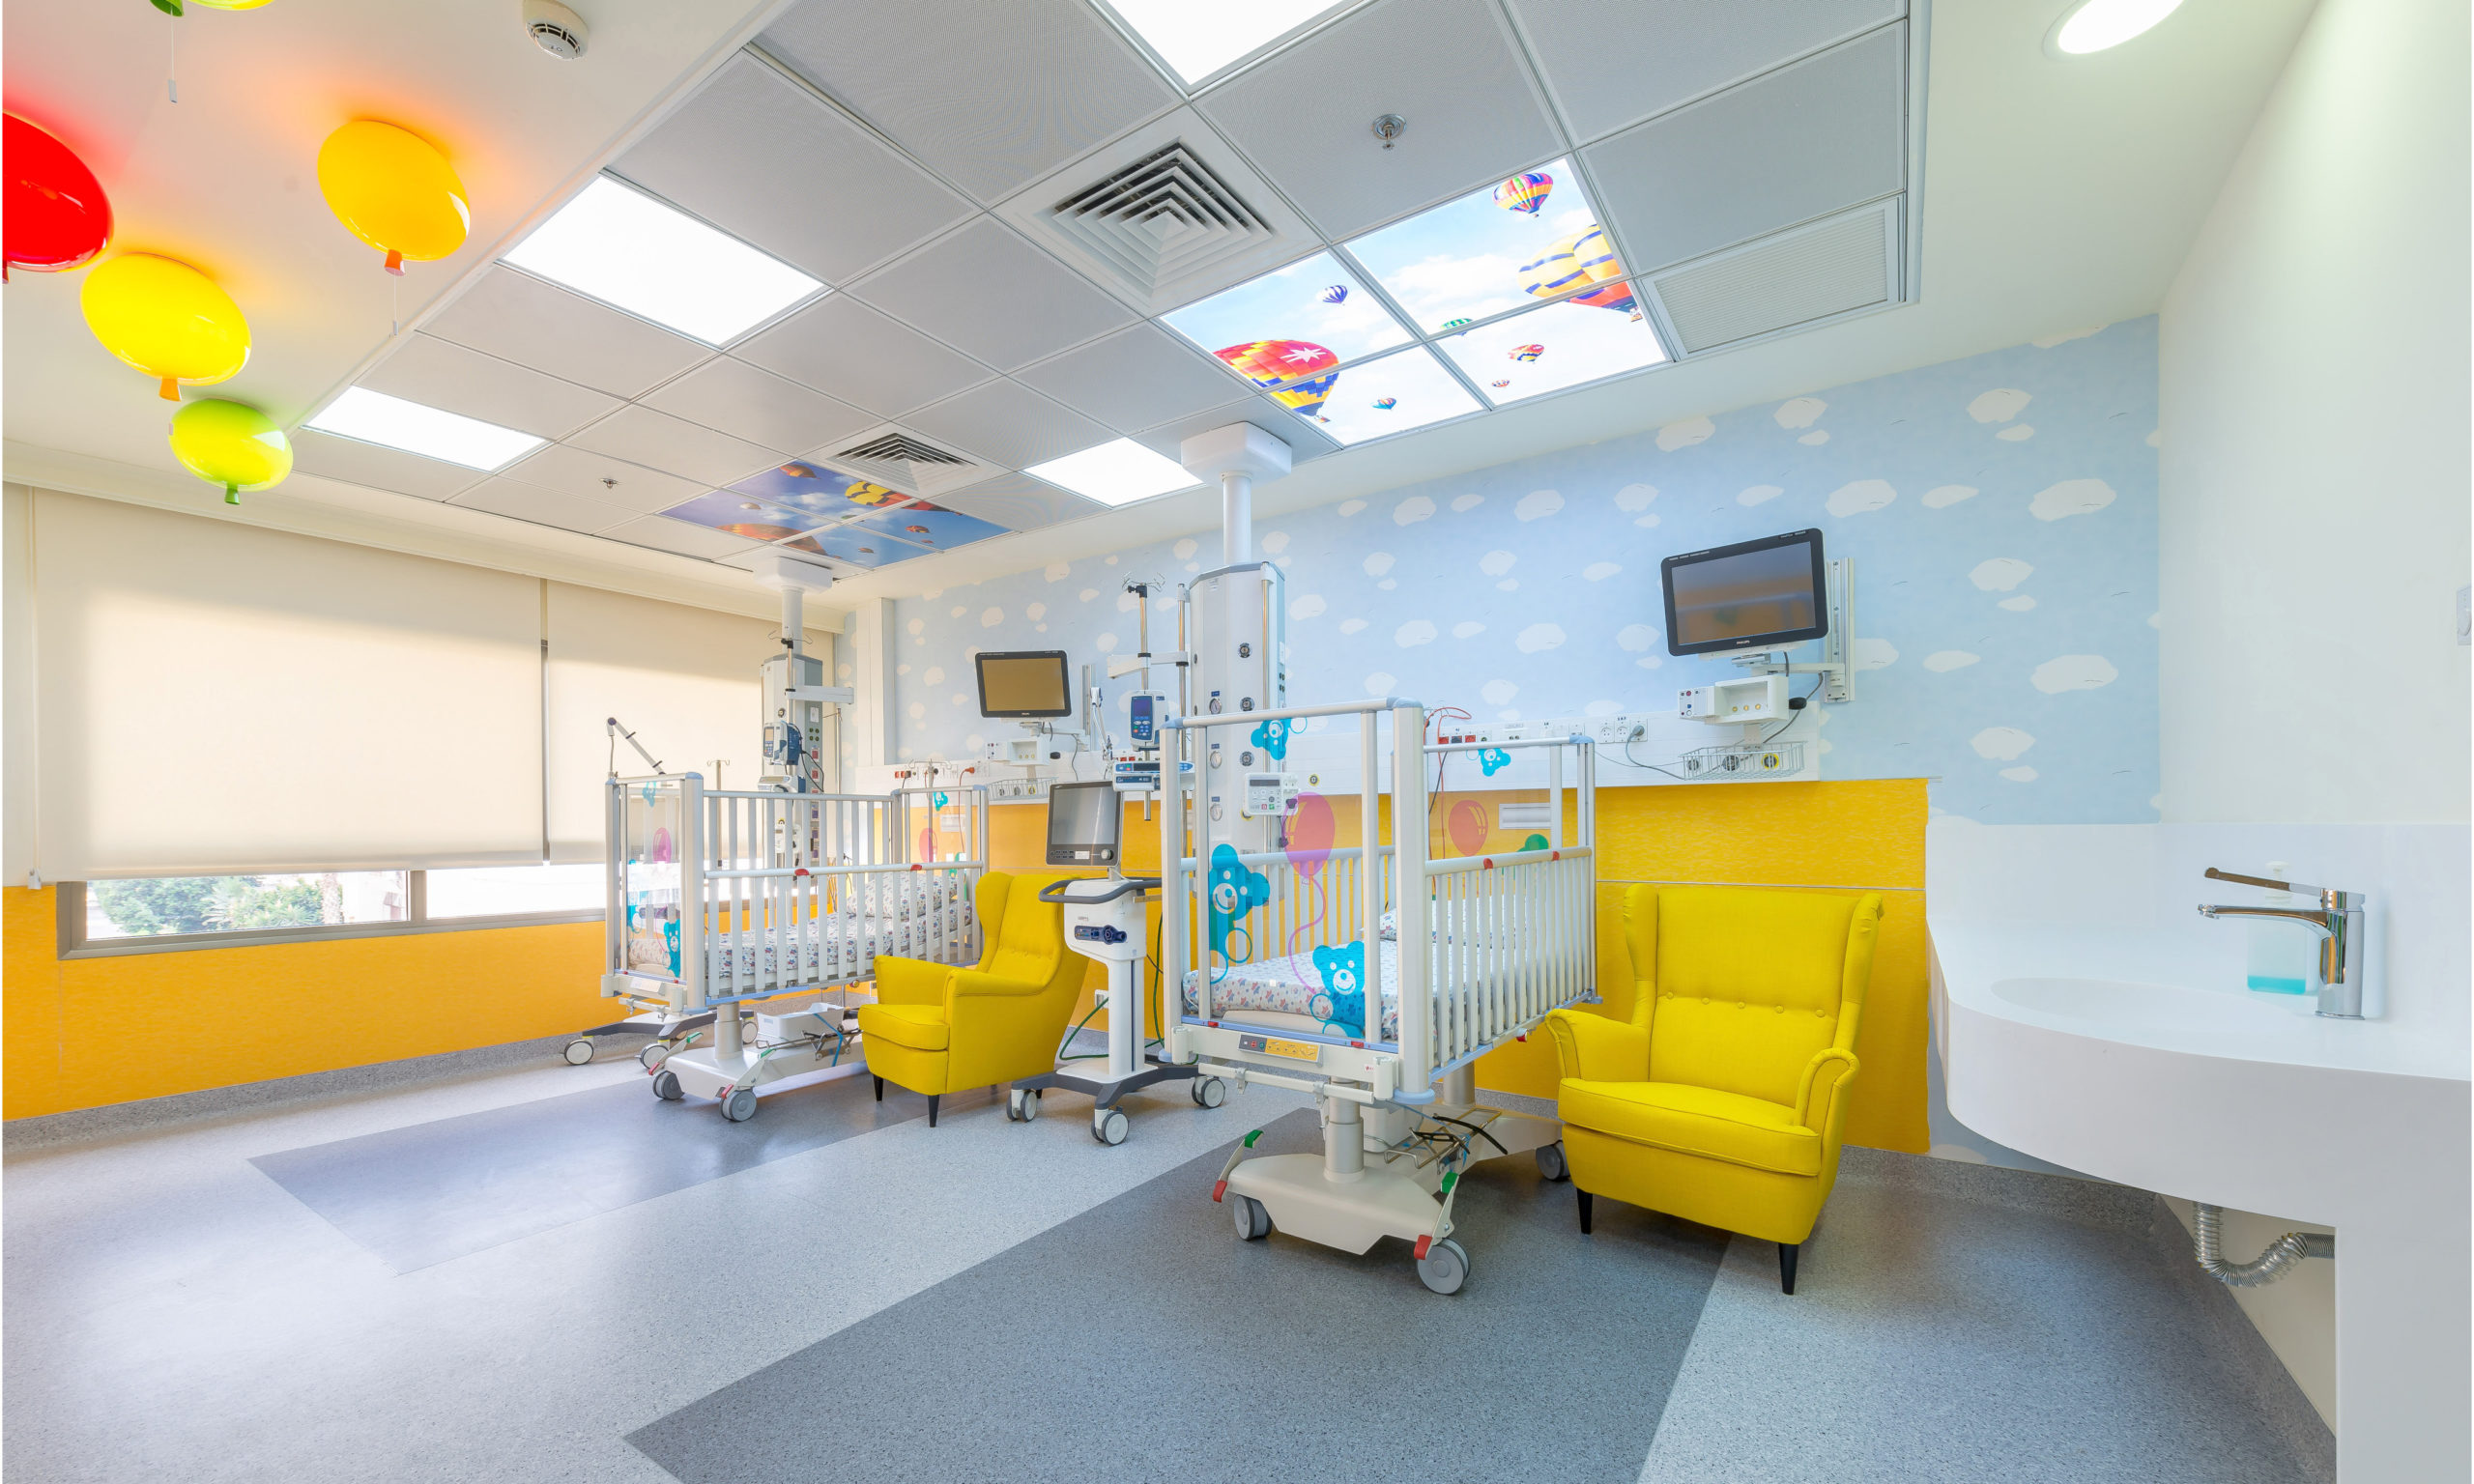 Beds of New PICU